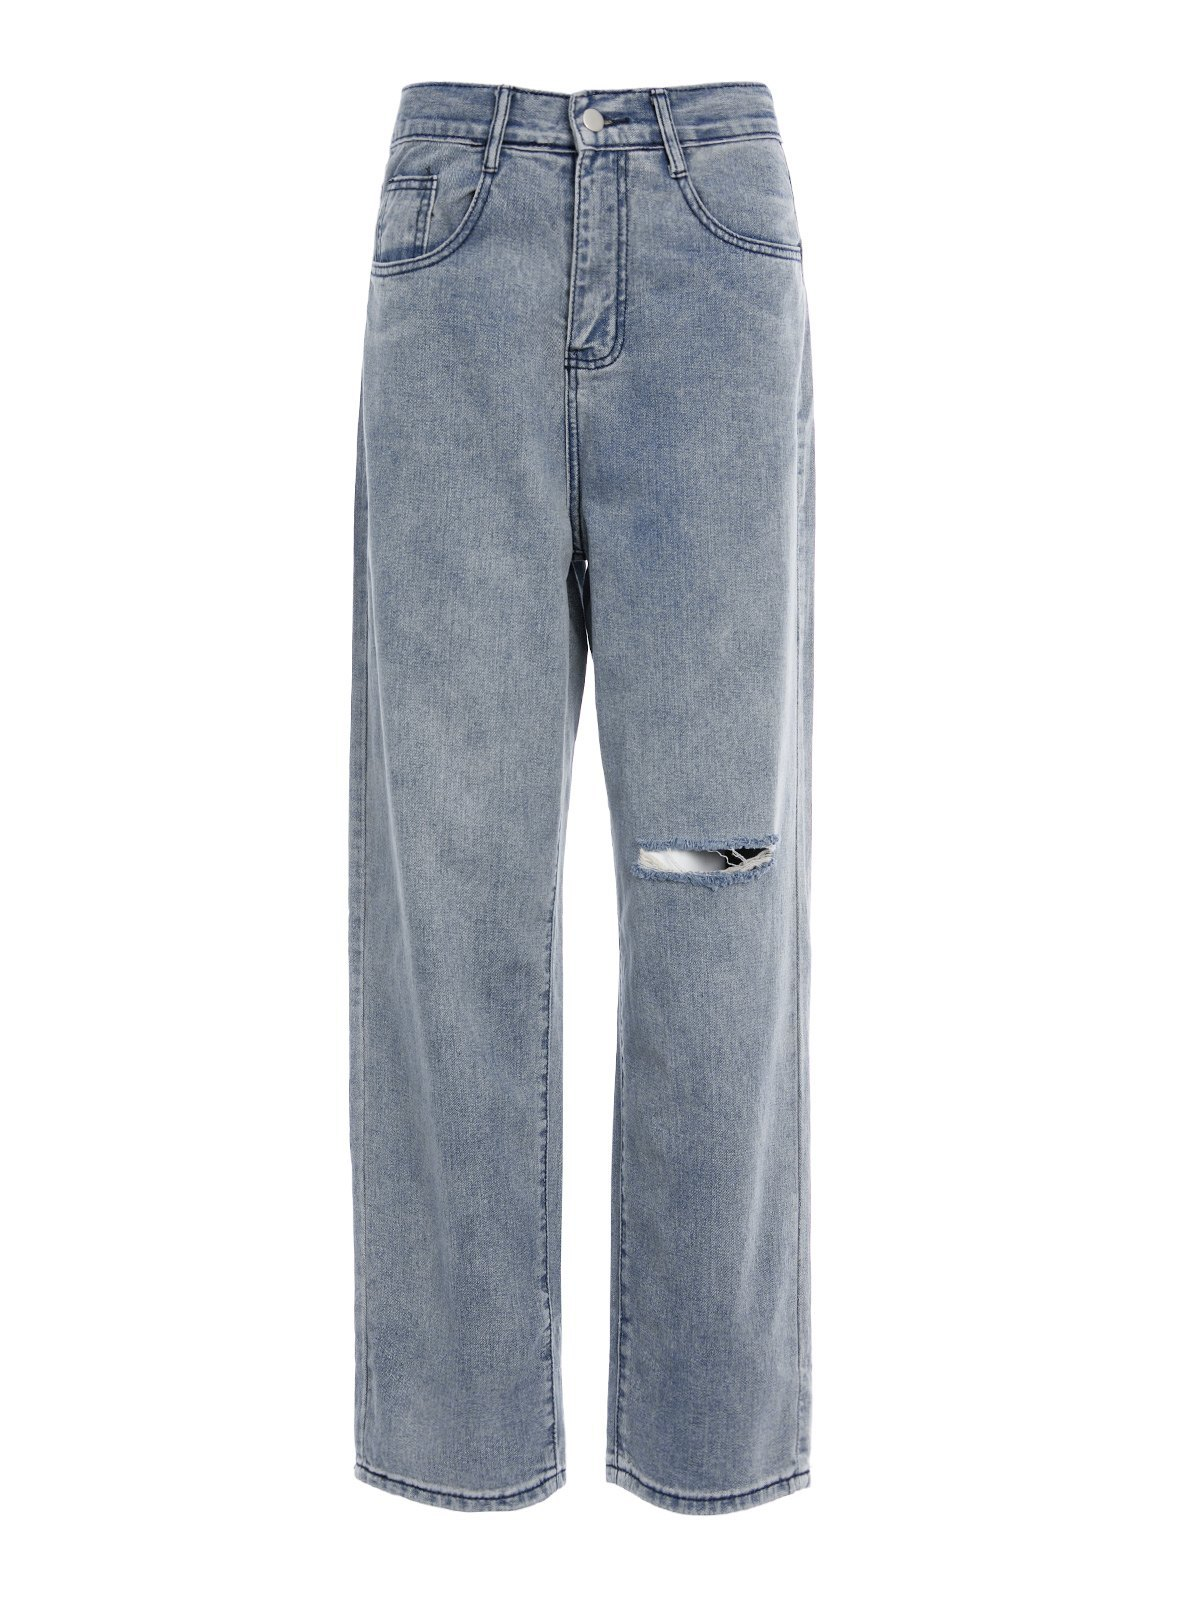 Basic Washed Ripped Jeans -